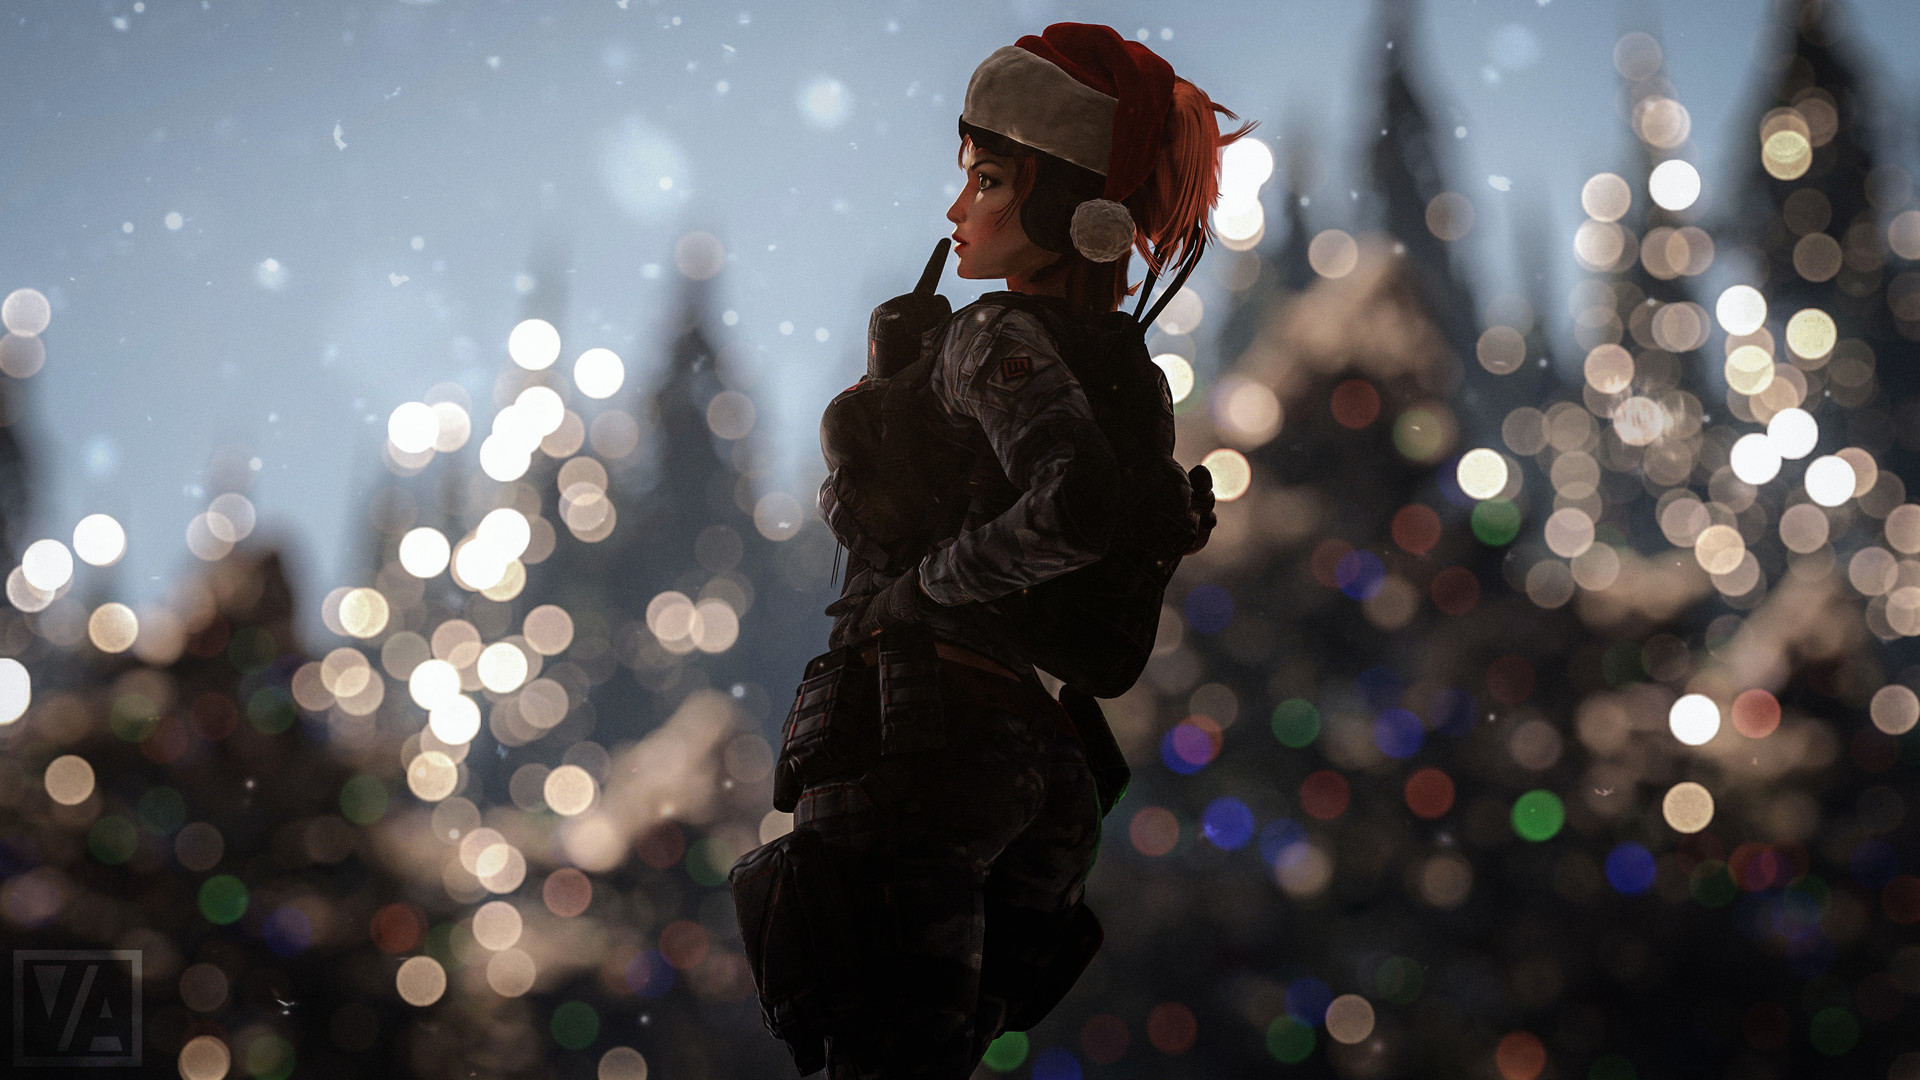 Pubg Mobile Helmet Wallpaper Pubg Pubgwallpapers: Santa Girl, Владимир Аплеев